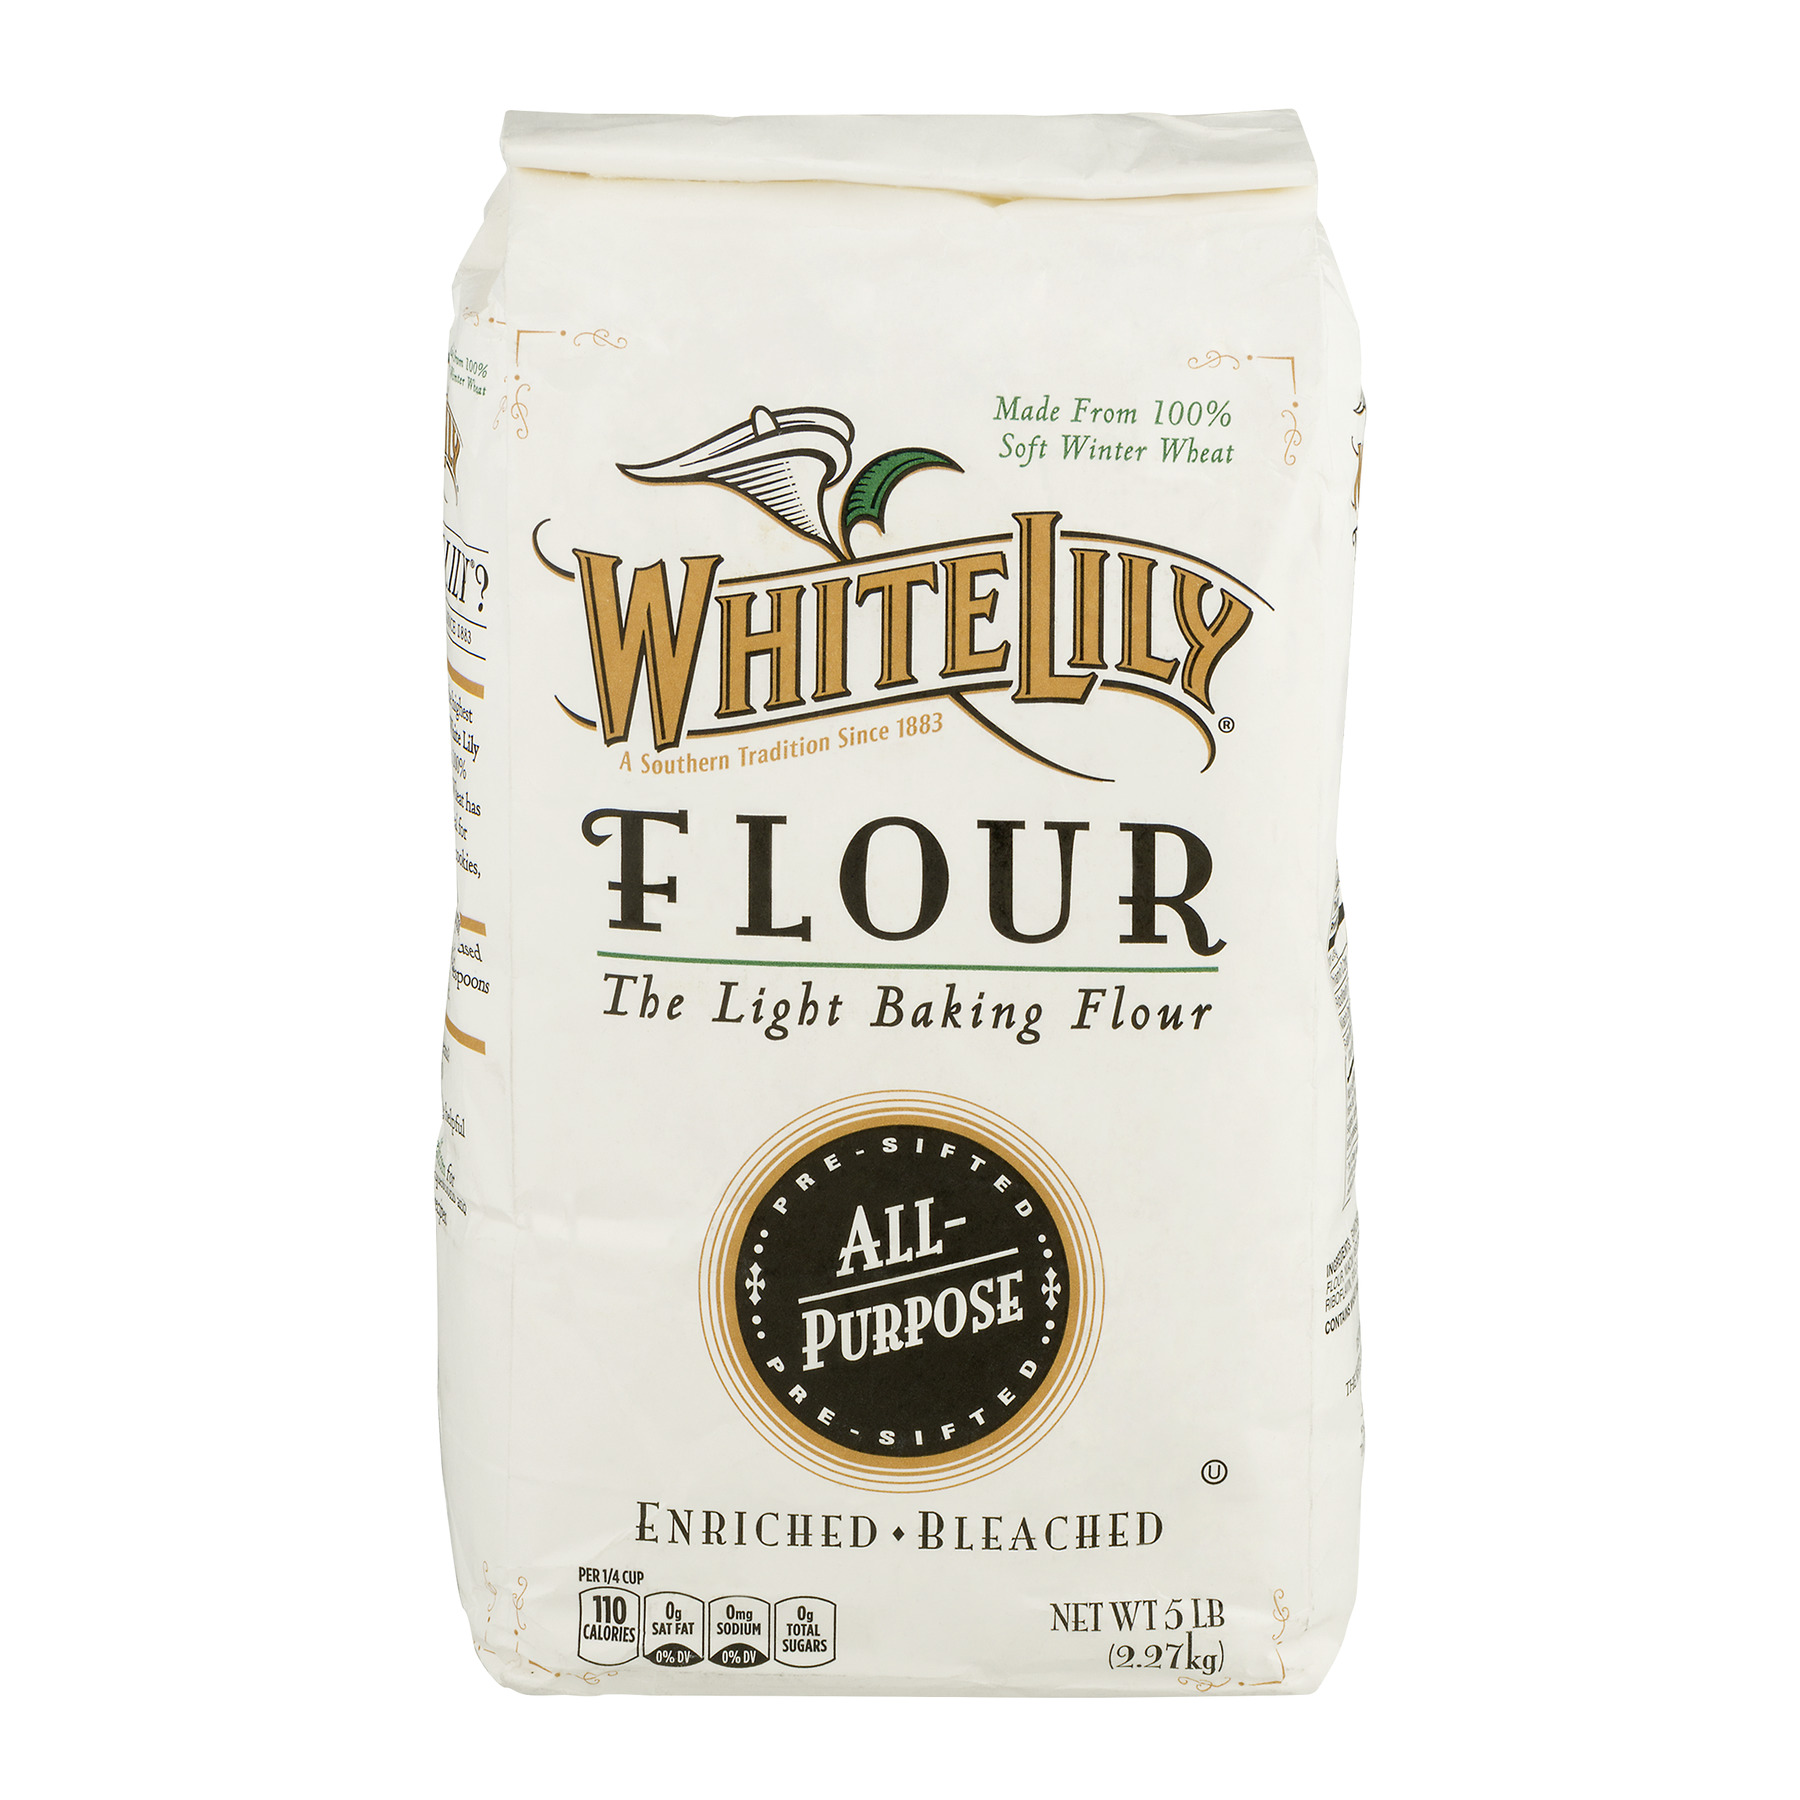 White Lily Flour All Purpose Enriched - Bleached, 5.0 LB